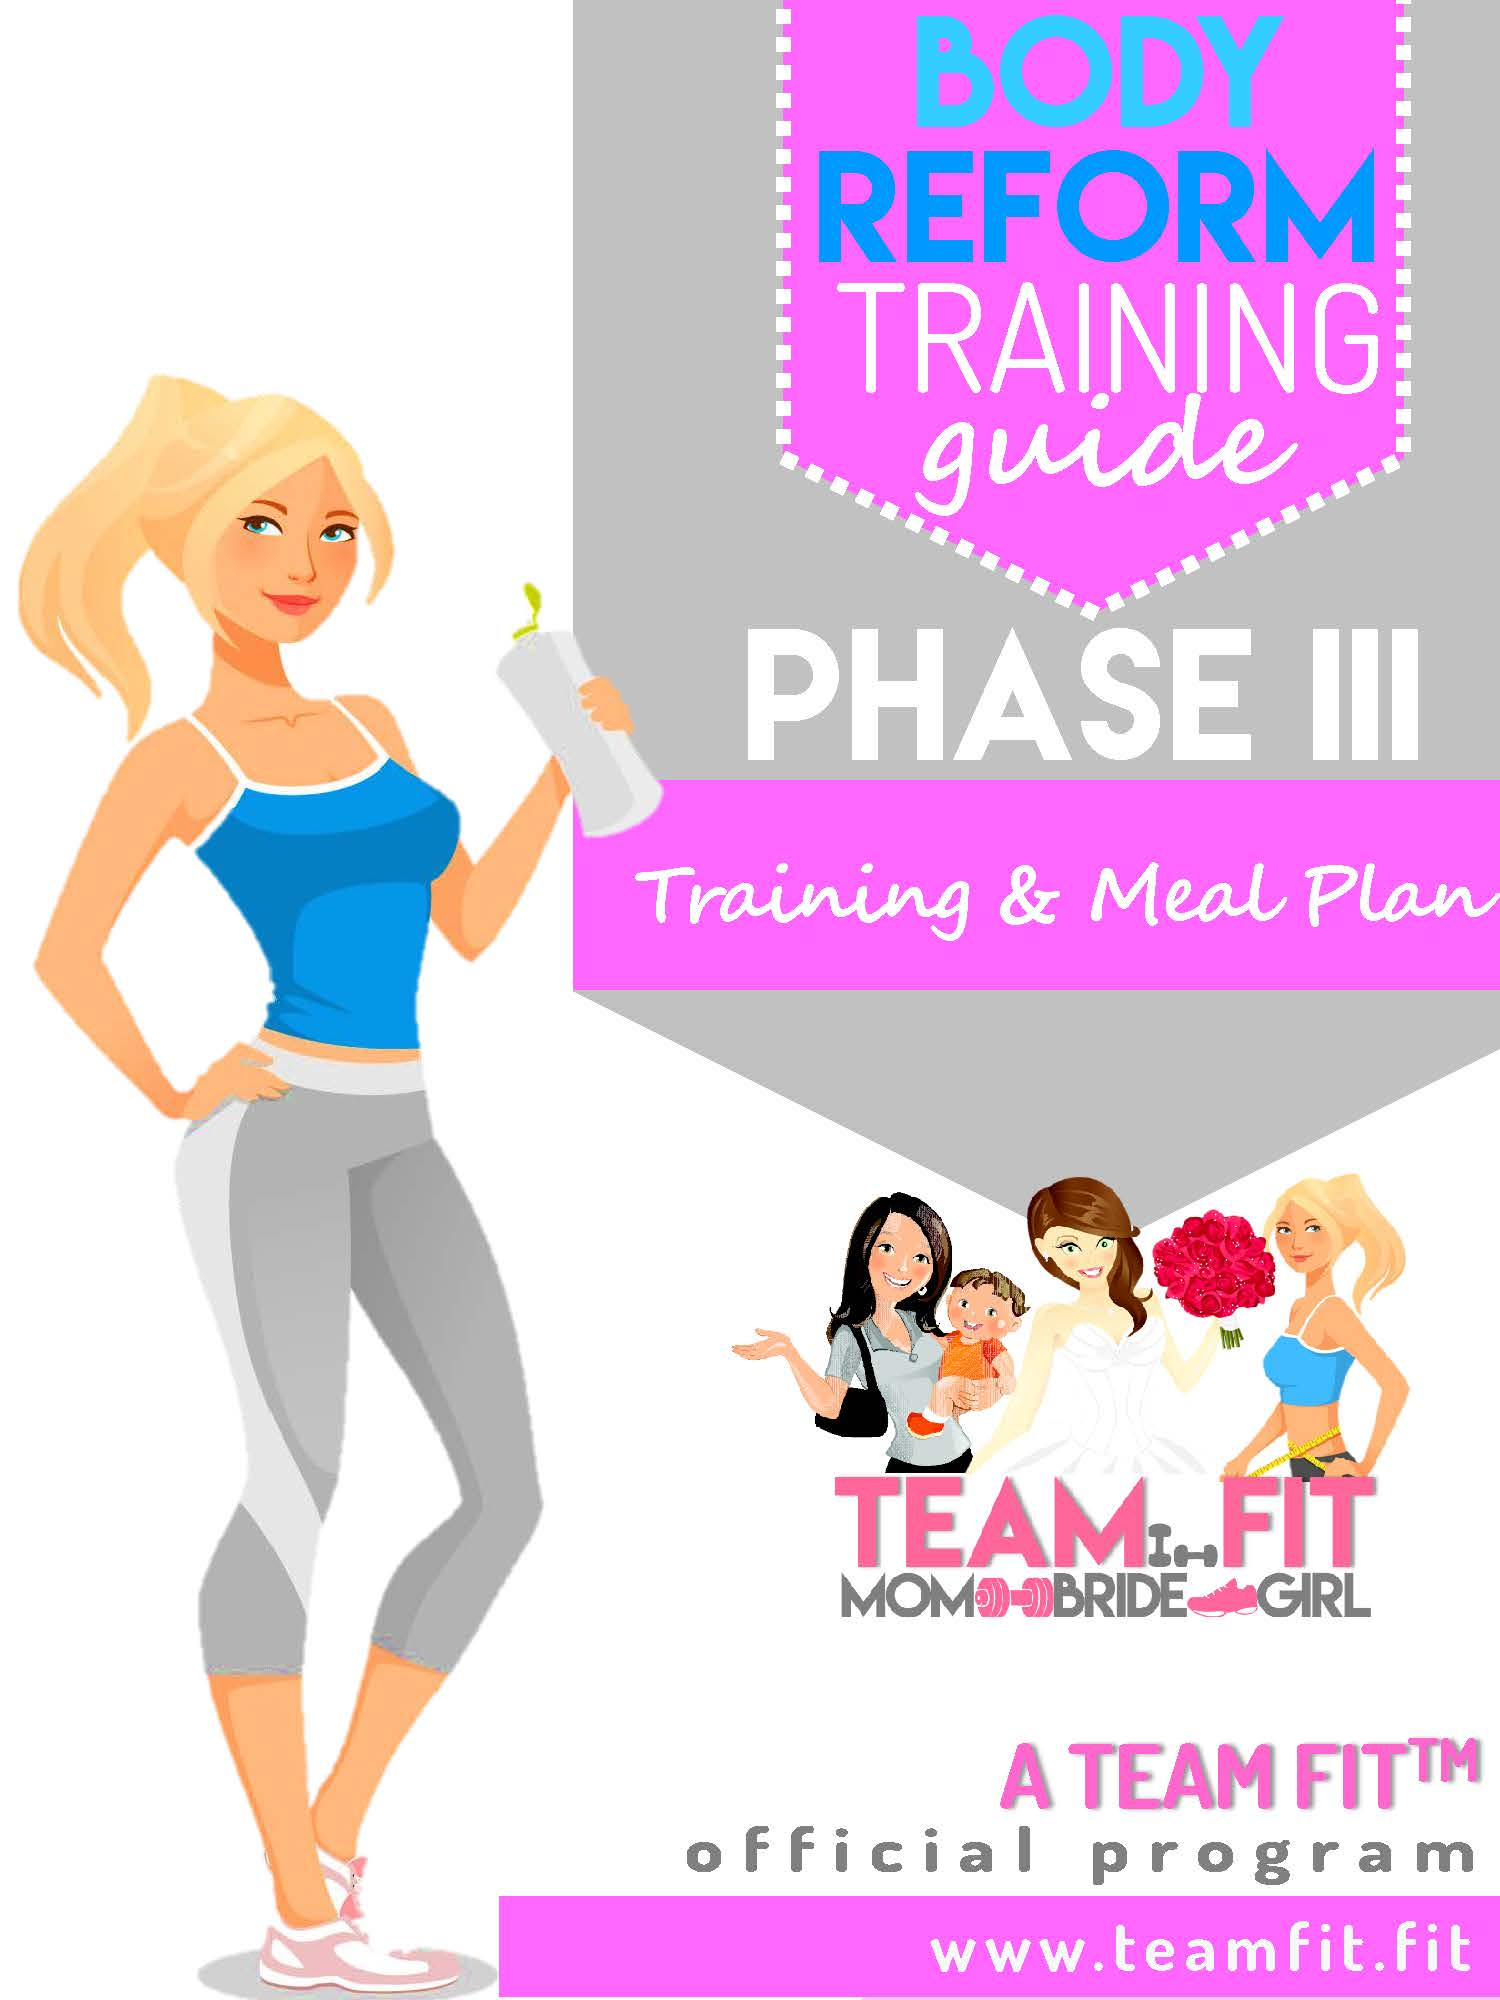 team-fit-women-personal-training-support